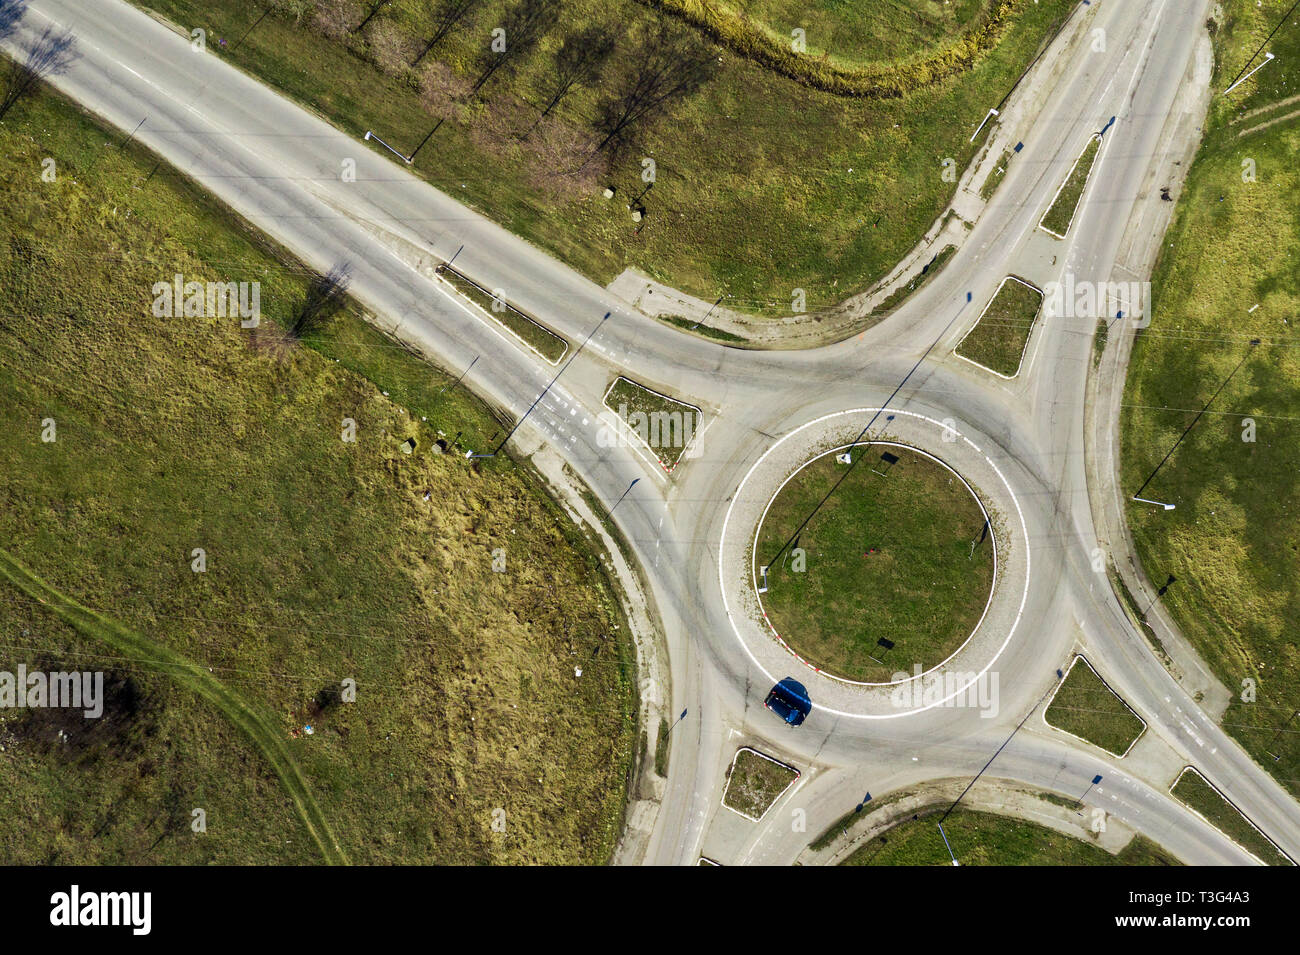 Aerial view of traffic circle roundabout road junction, top view with cars - Stock Image